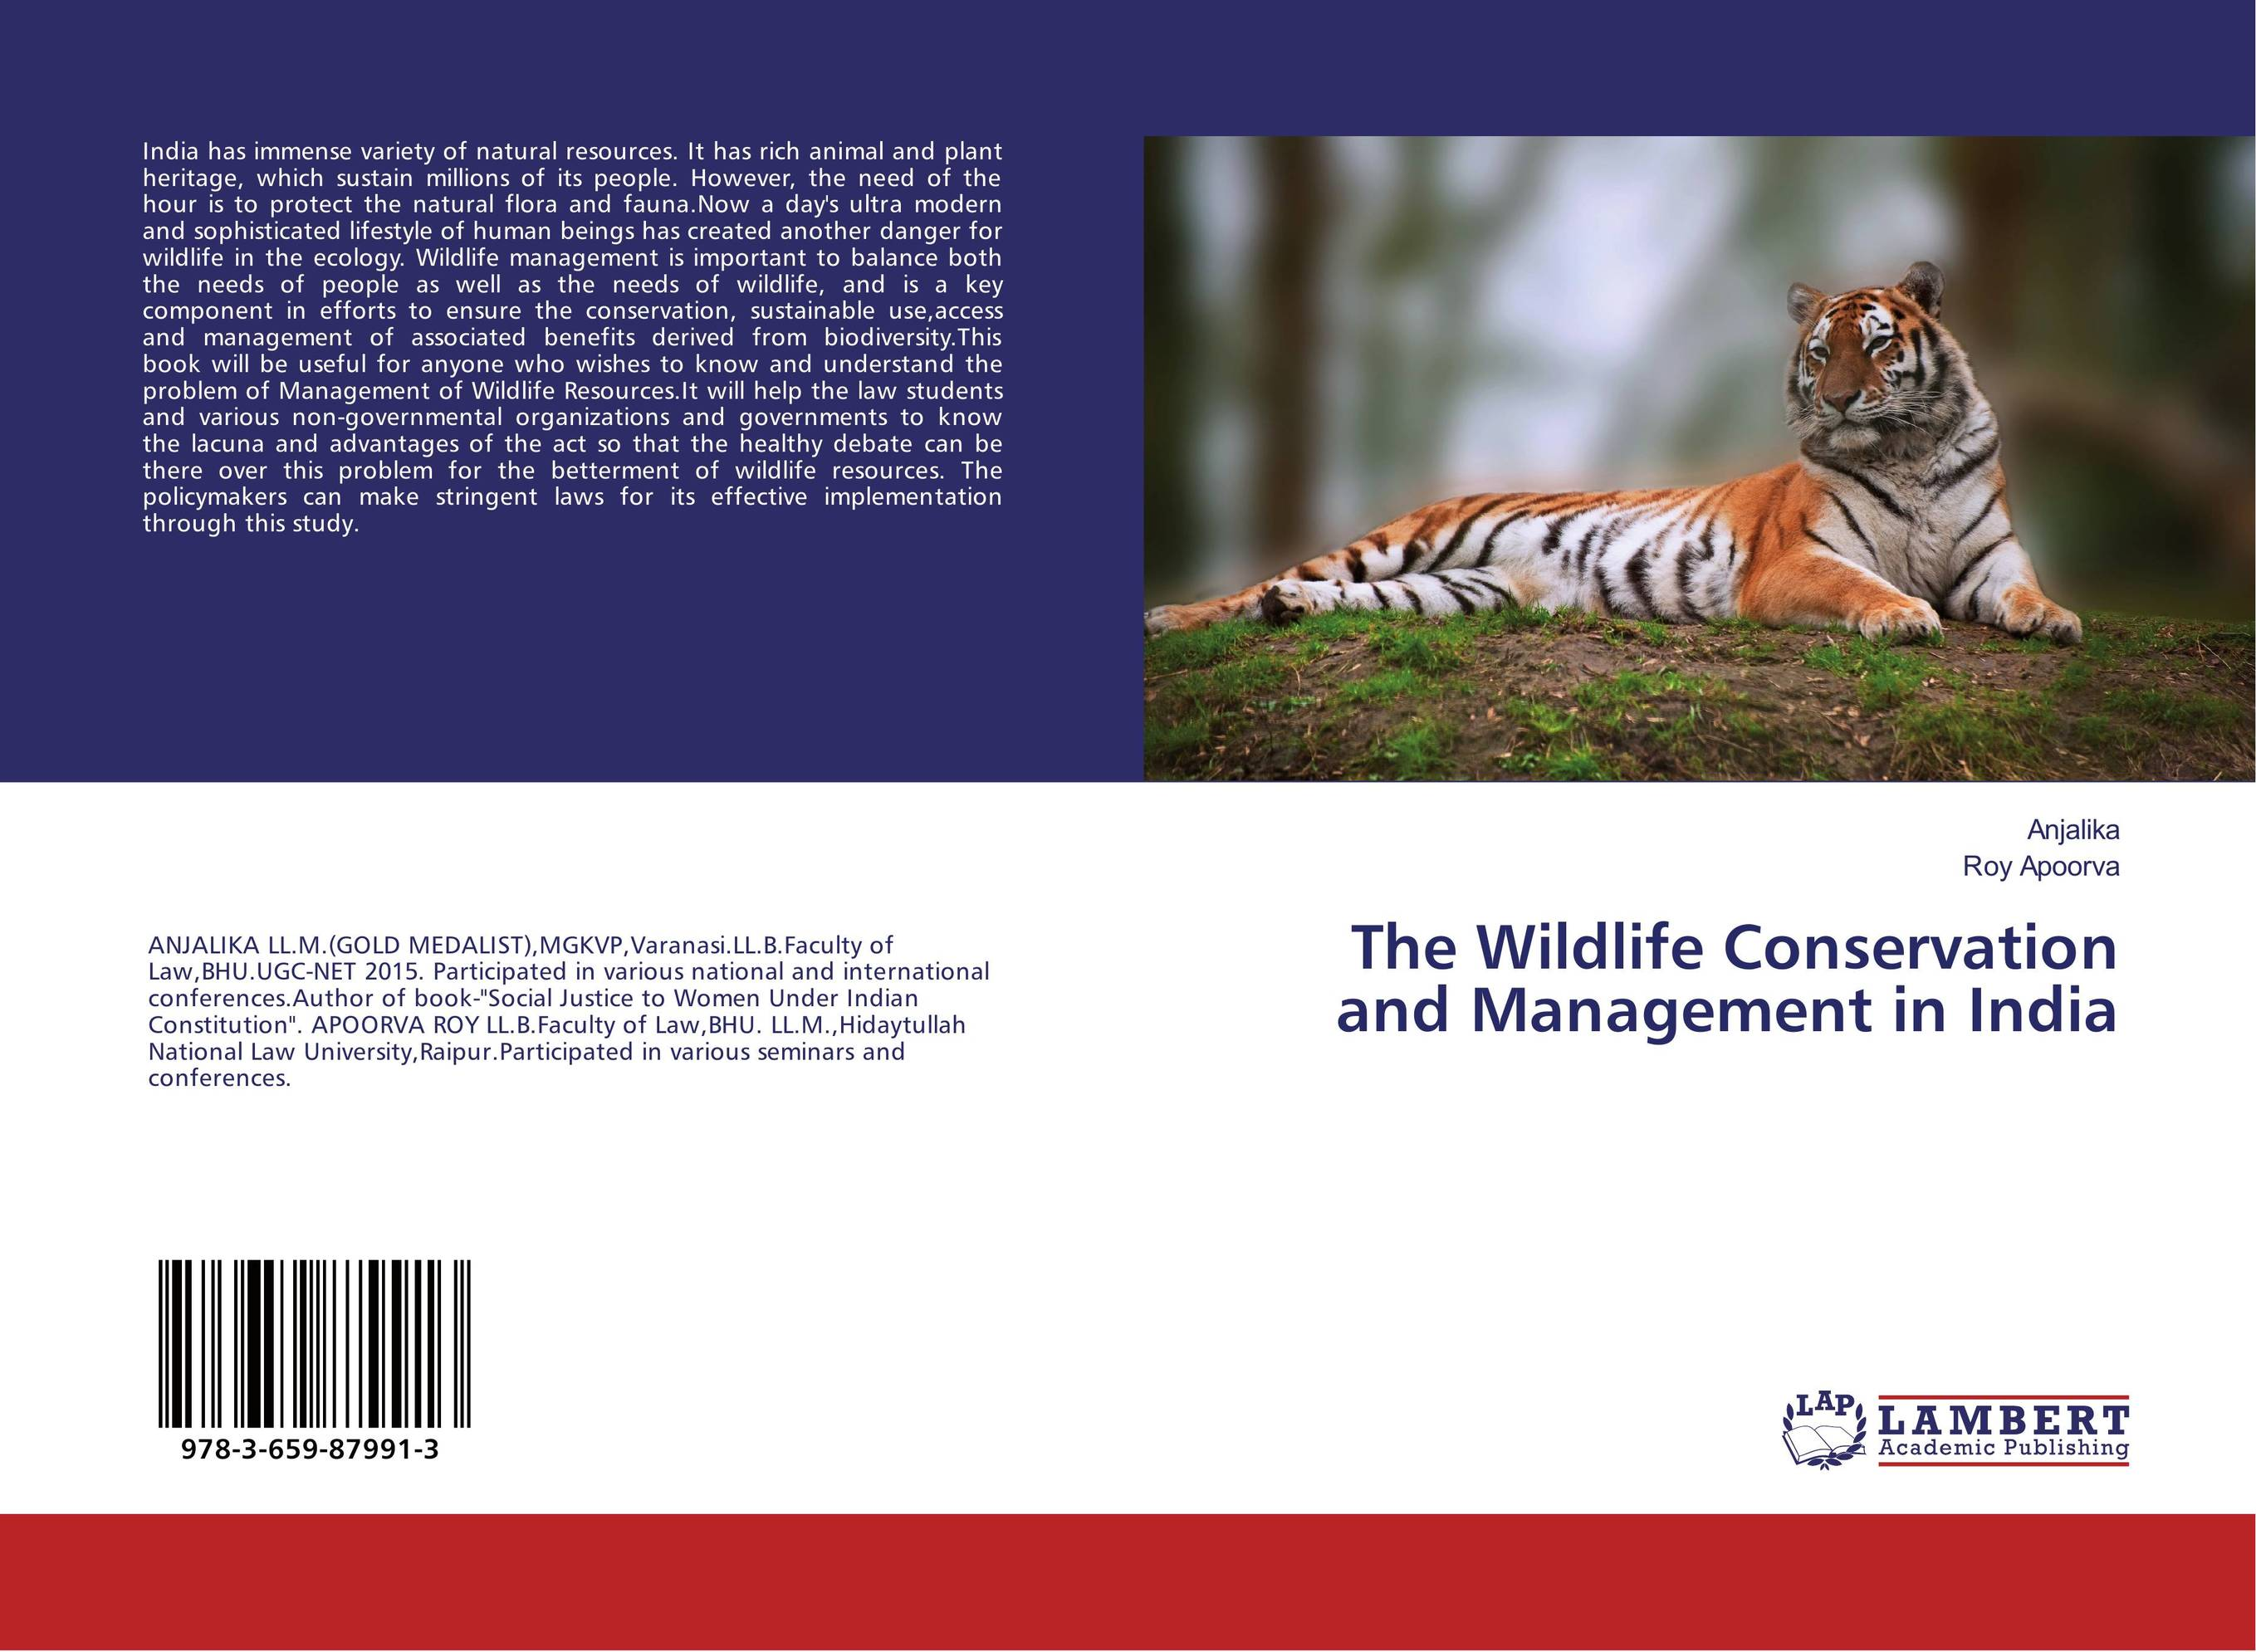 The Wildlife Conservation and Management in India the role of heritage conservation districts